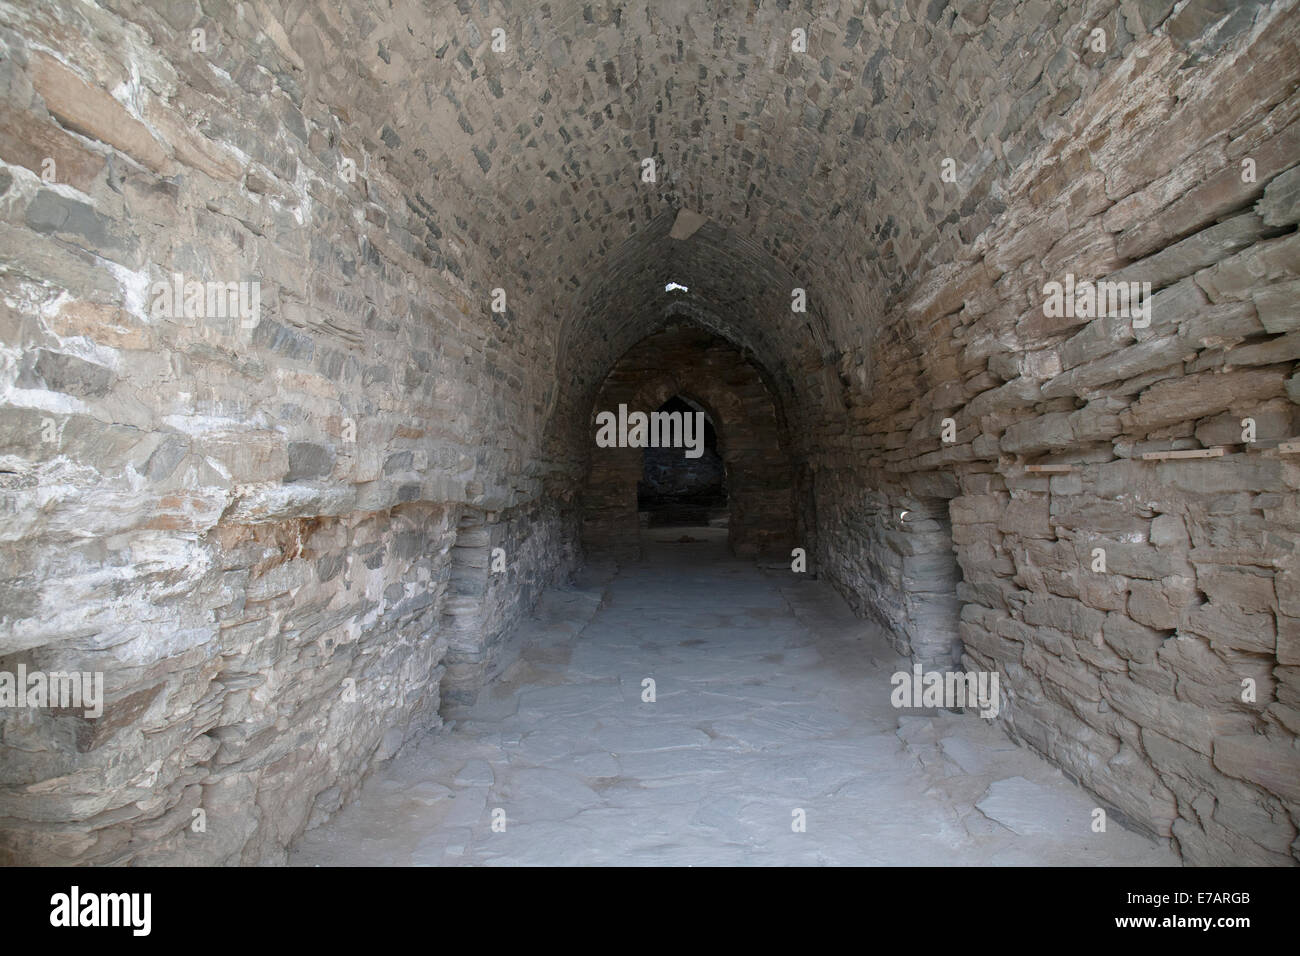 Interior of Tash Rabat, Kyrgyzstan Stock Photo